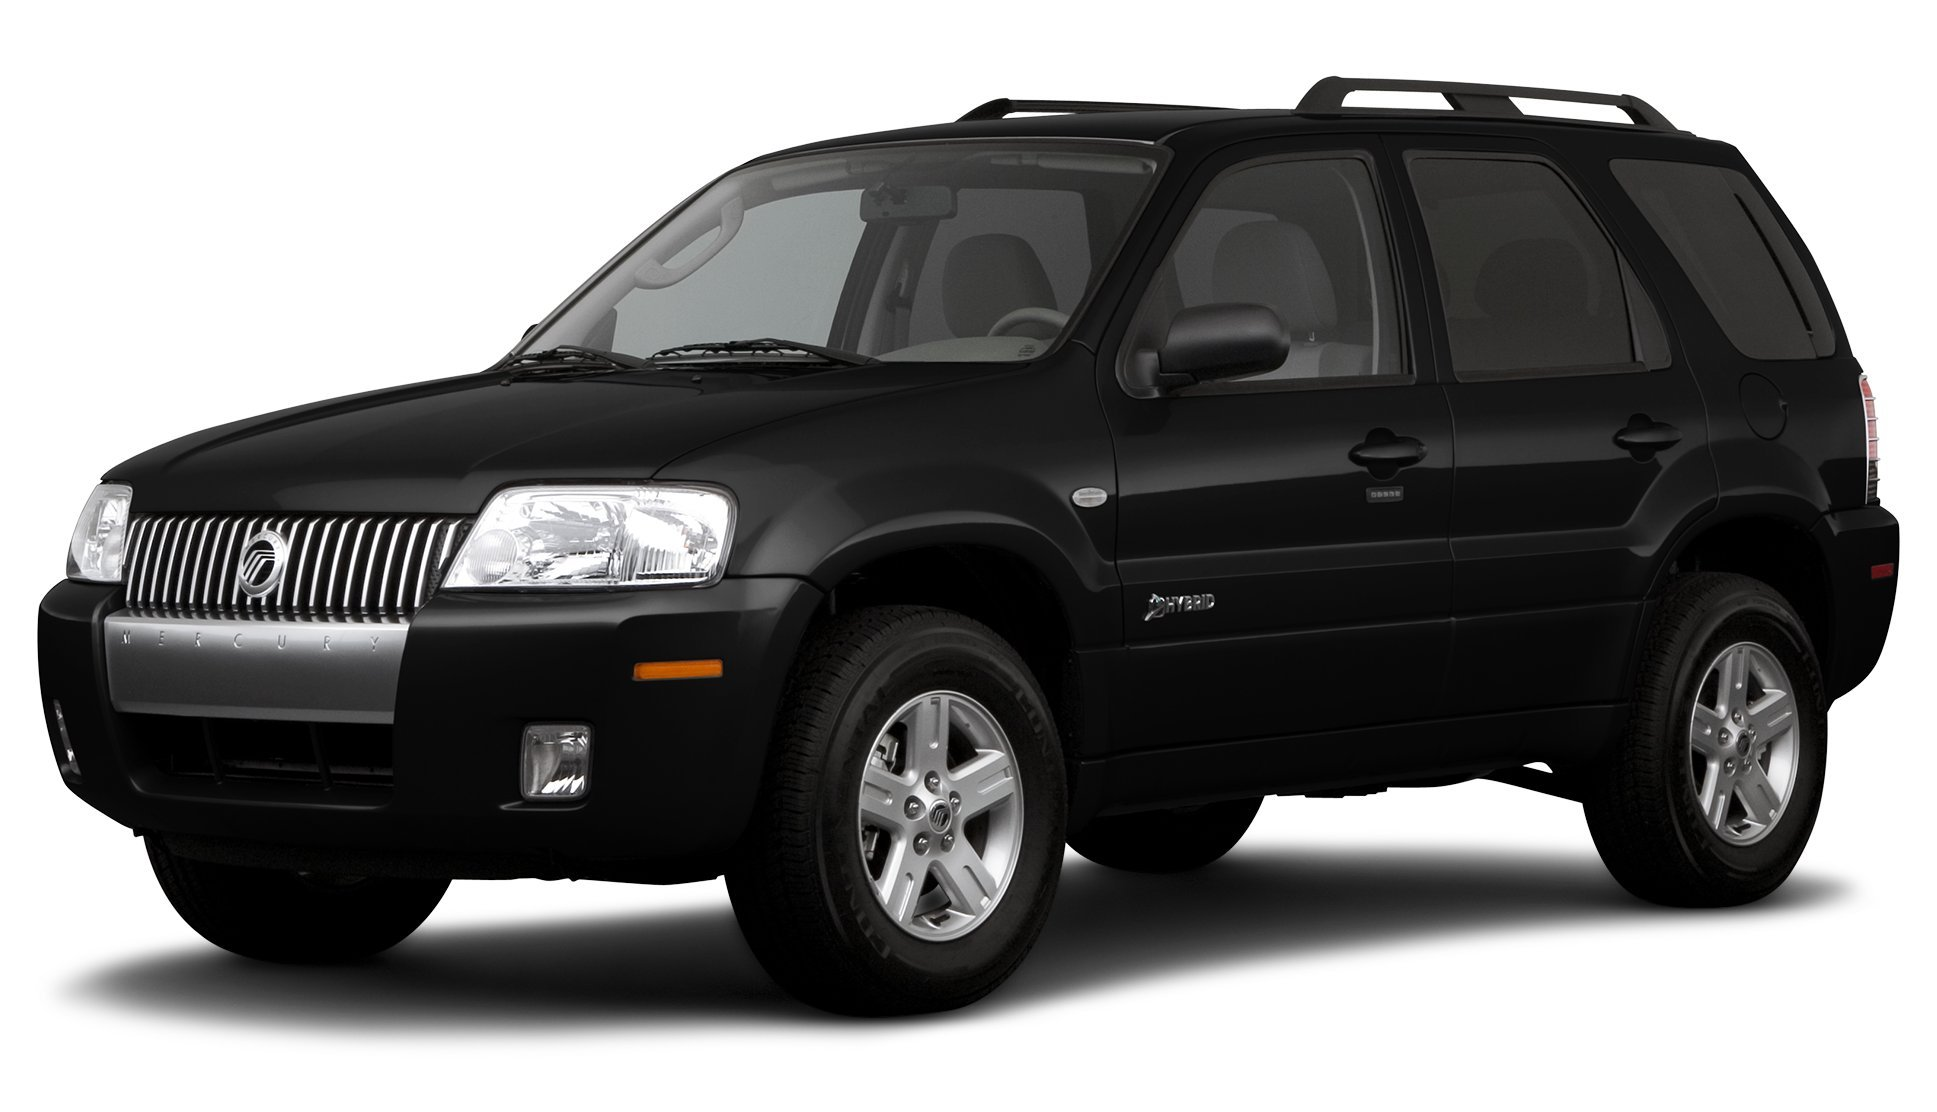 amazon com 2007 mercury mariner reviews images and specs vehicles rh amazon com 2007 mercury mariner owner's manual free 2010 mercury mariner owners manual